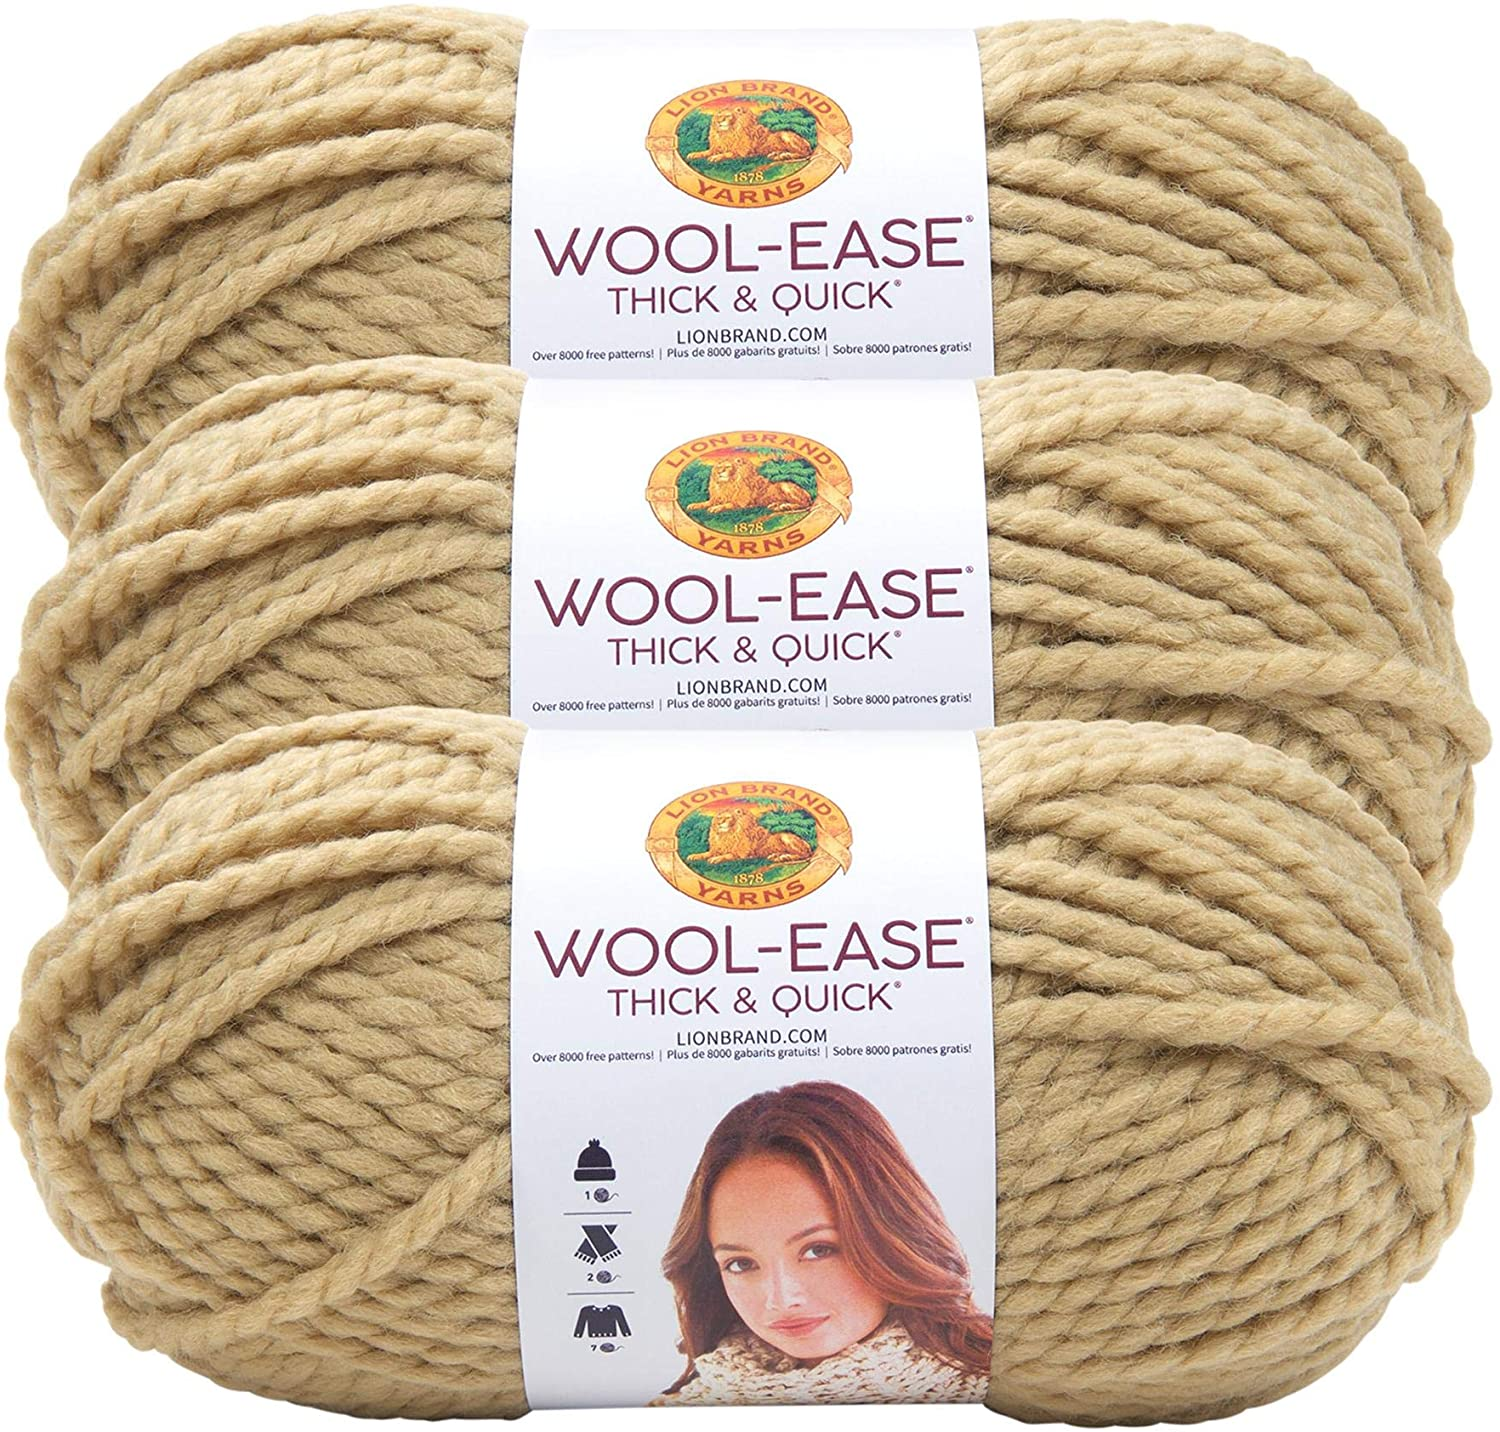 (3 Pack) Lion Brand Yarn 640-127 Wool-Ease Thick & Quick Yarn, Peanut